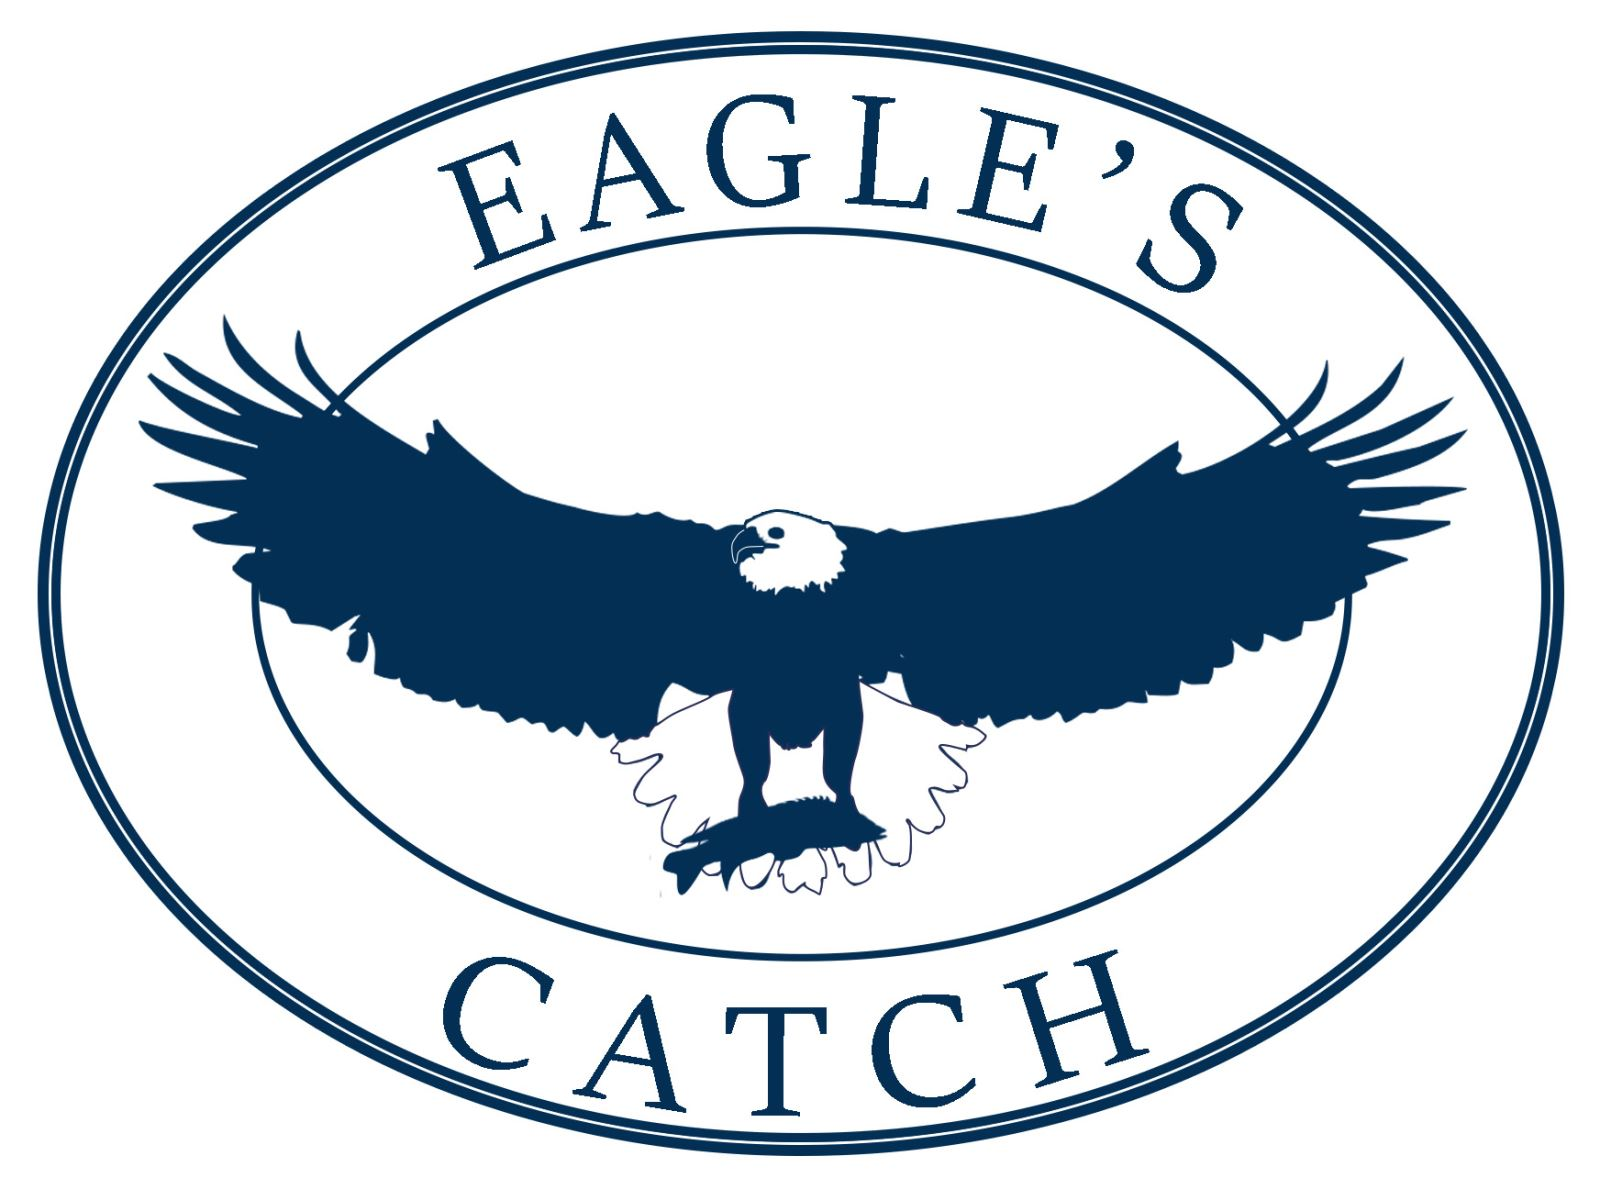 Eagle's Catch Fish Farm Honored with Iowa Venture Award